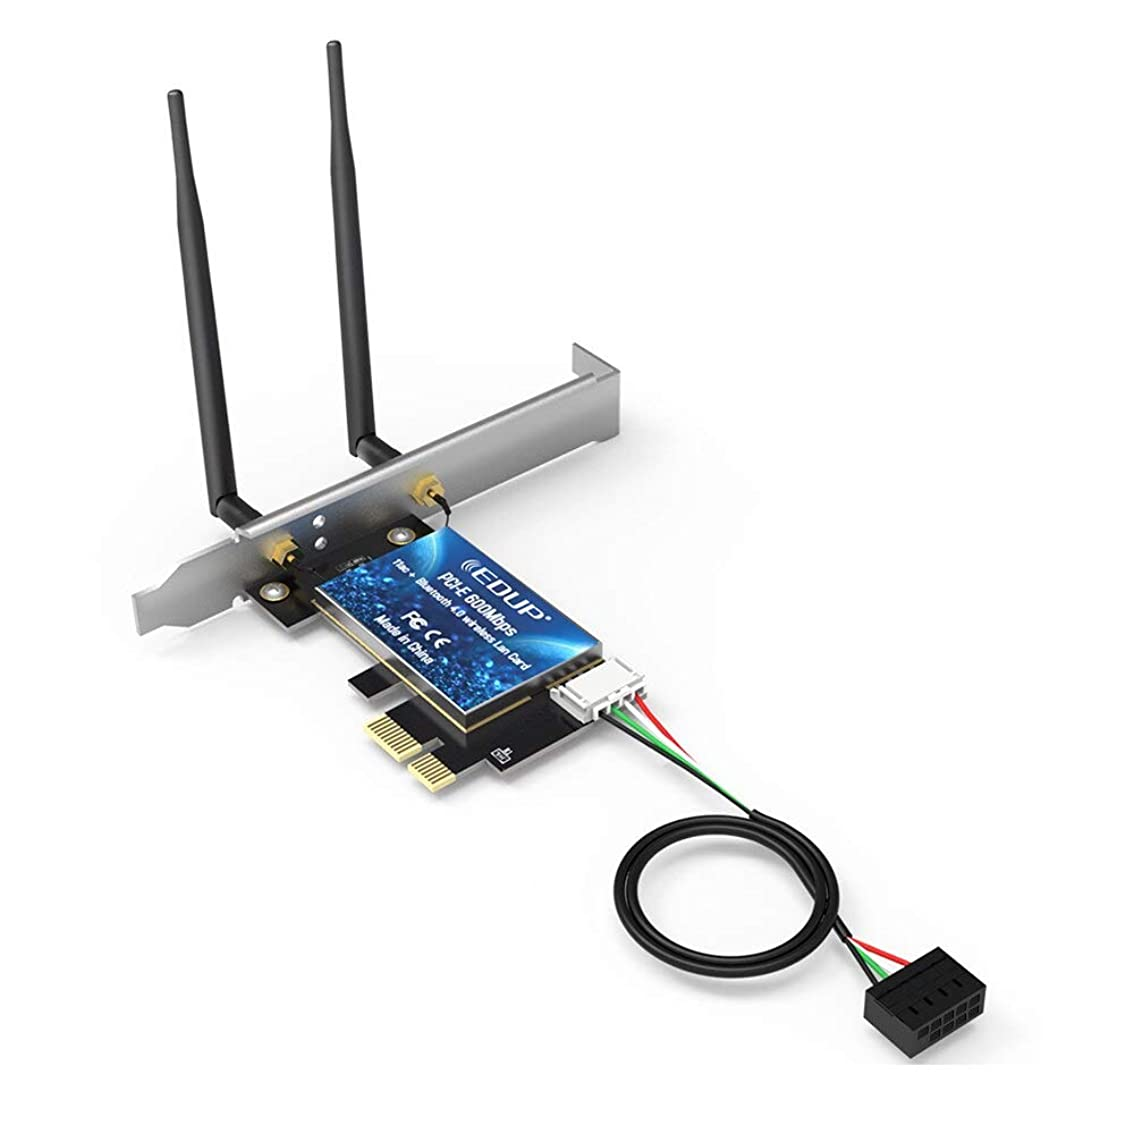 素晴らしい統治可能ゴミ箱2.4GHz/5.8Ghz Dual Band AC600 WiFi Bluetooths PCI Express Adapter With 2*5DBi Antenna wifi laptop card